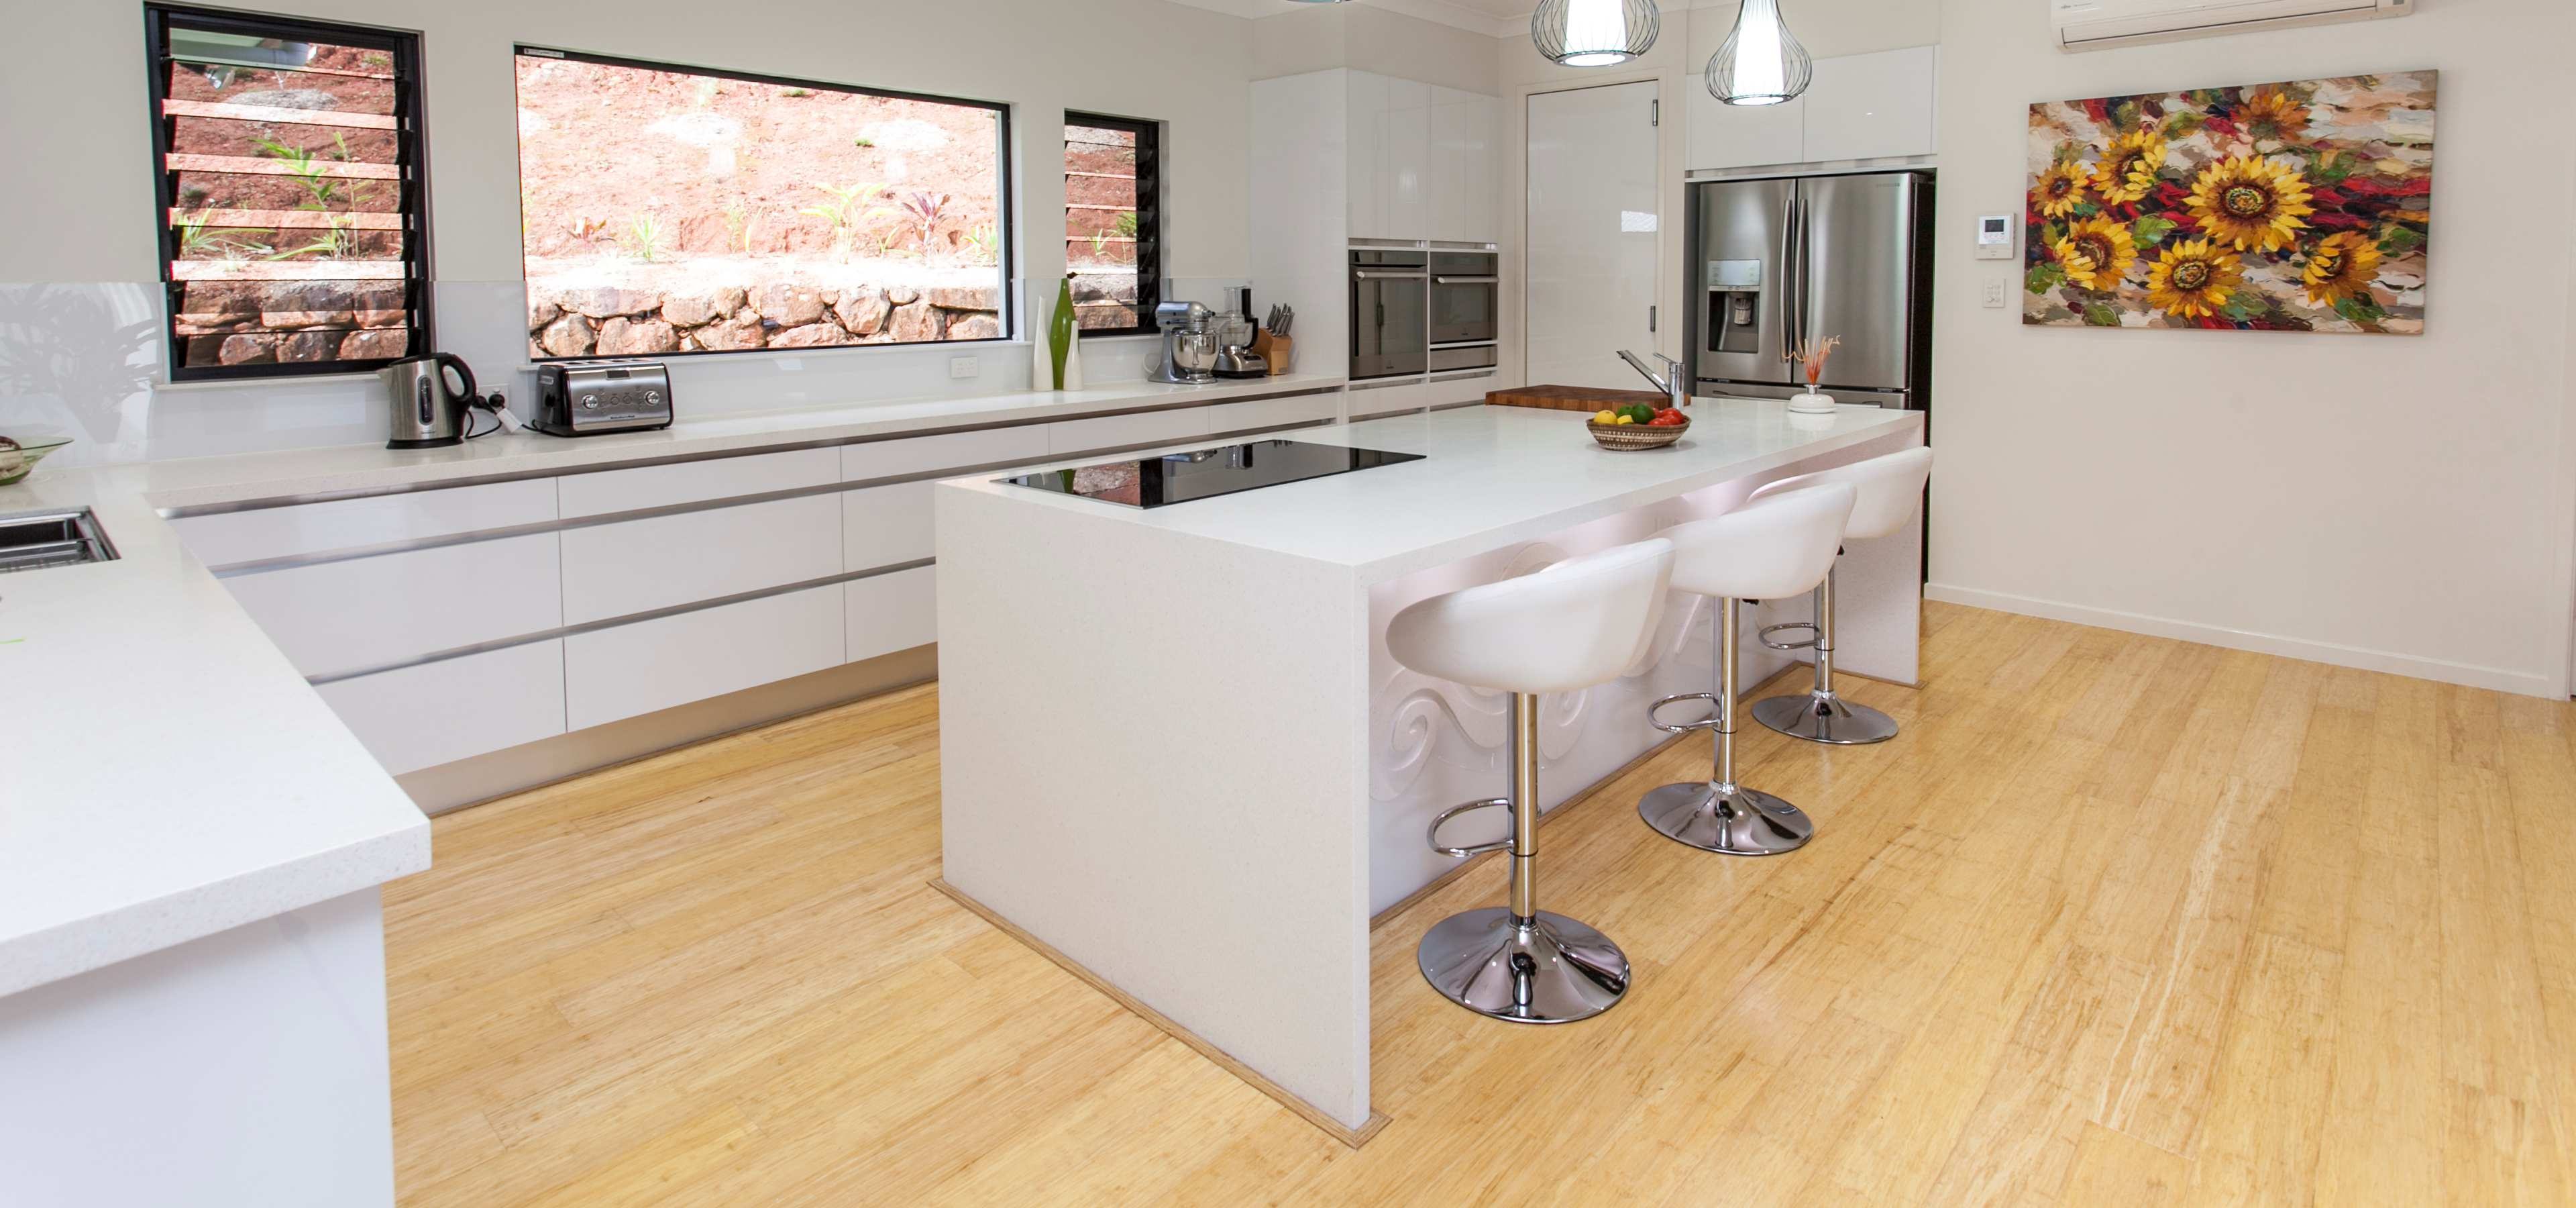 cairns kitchens